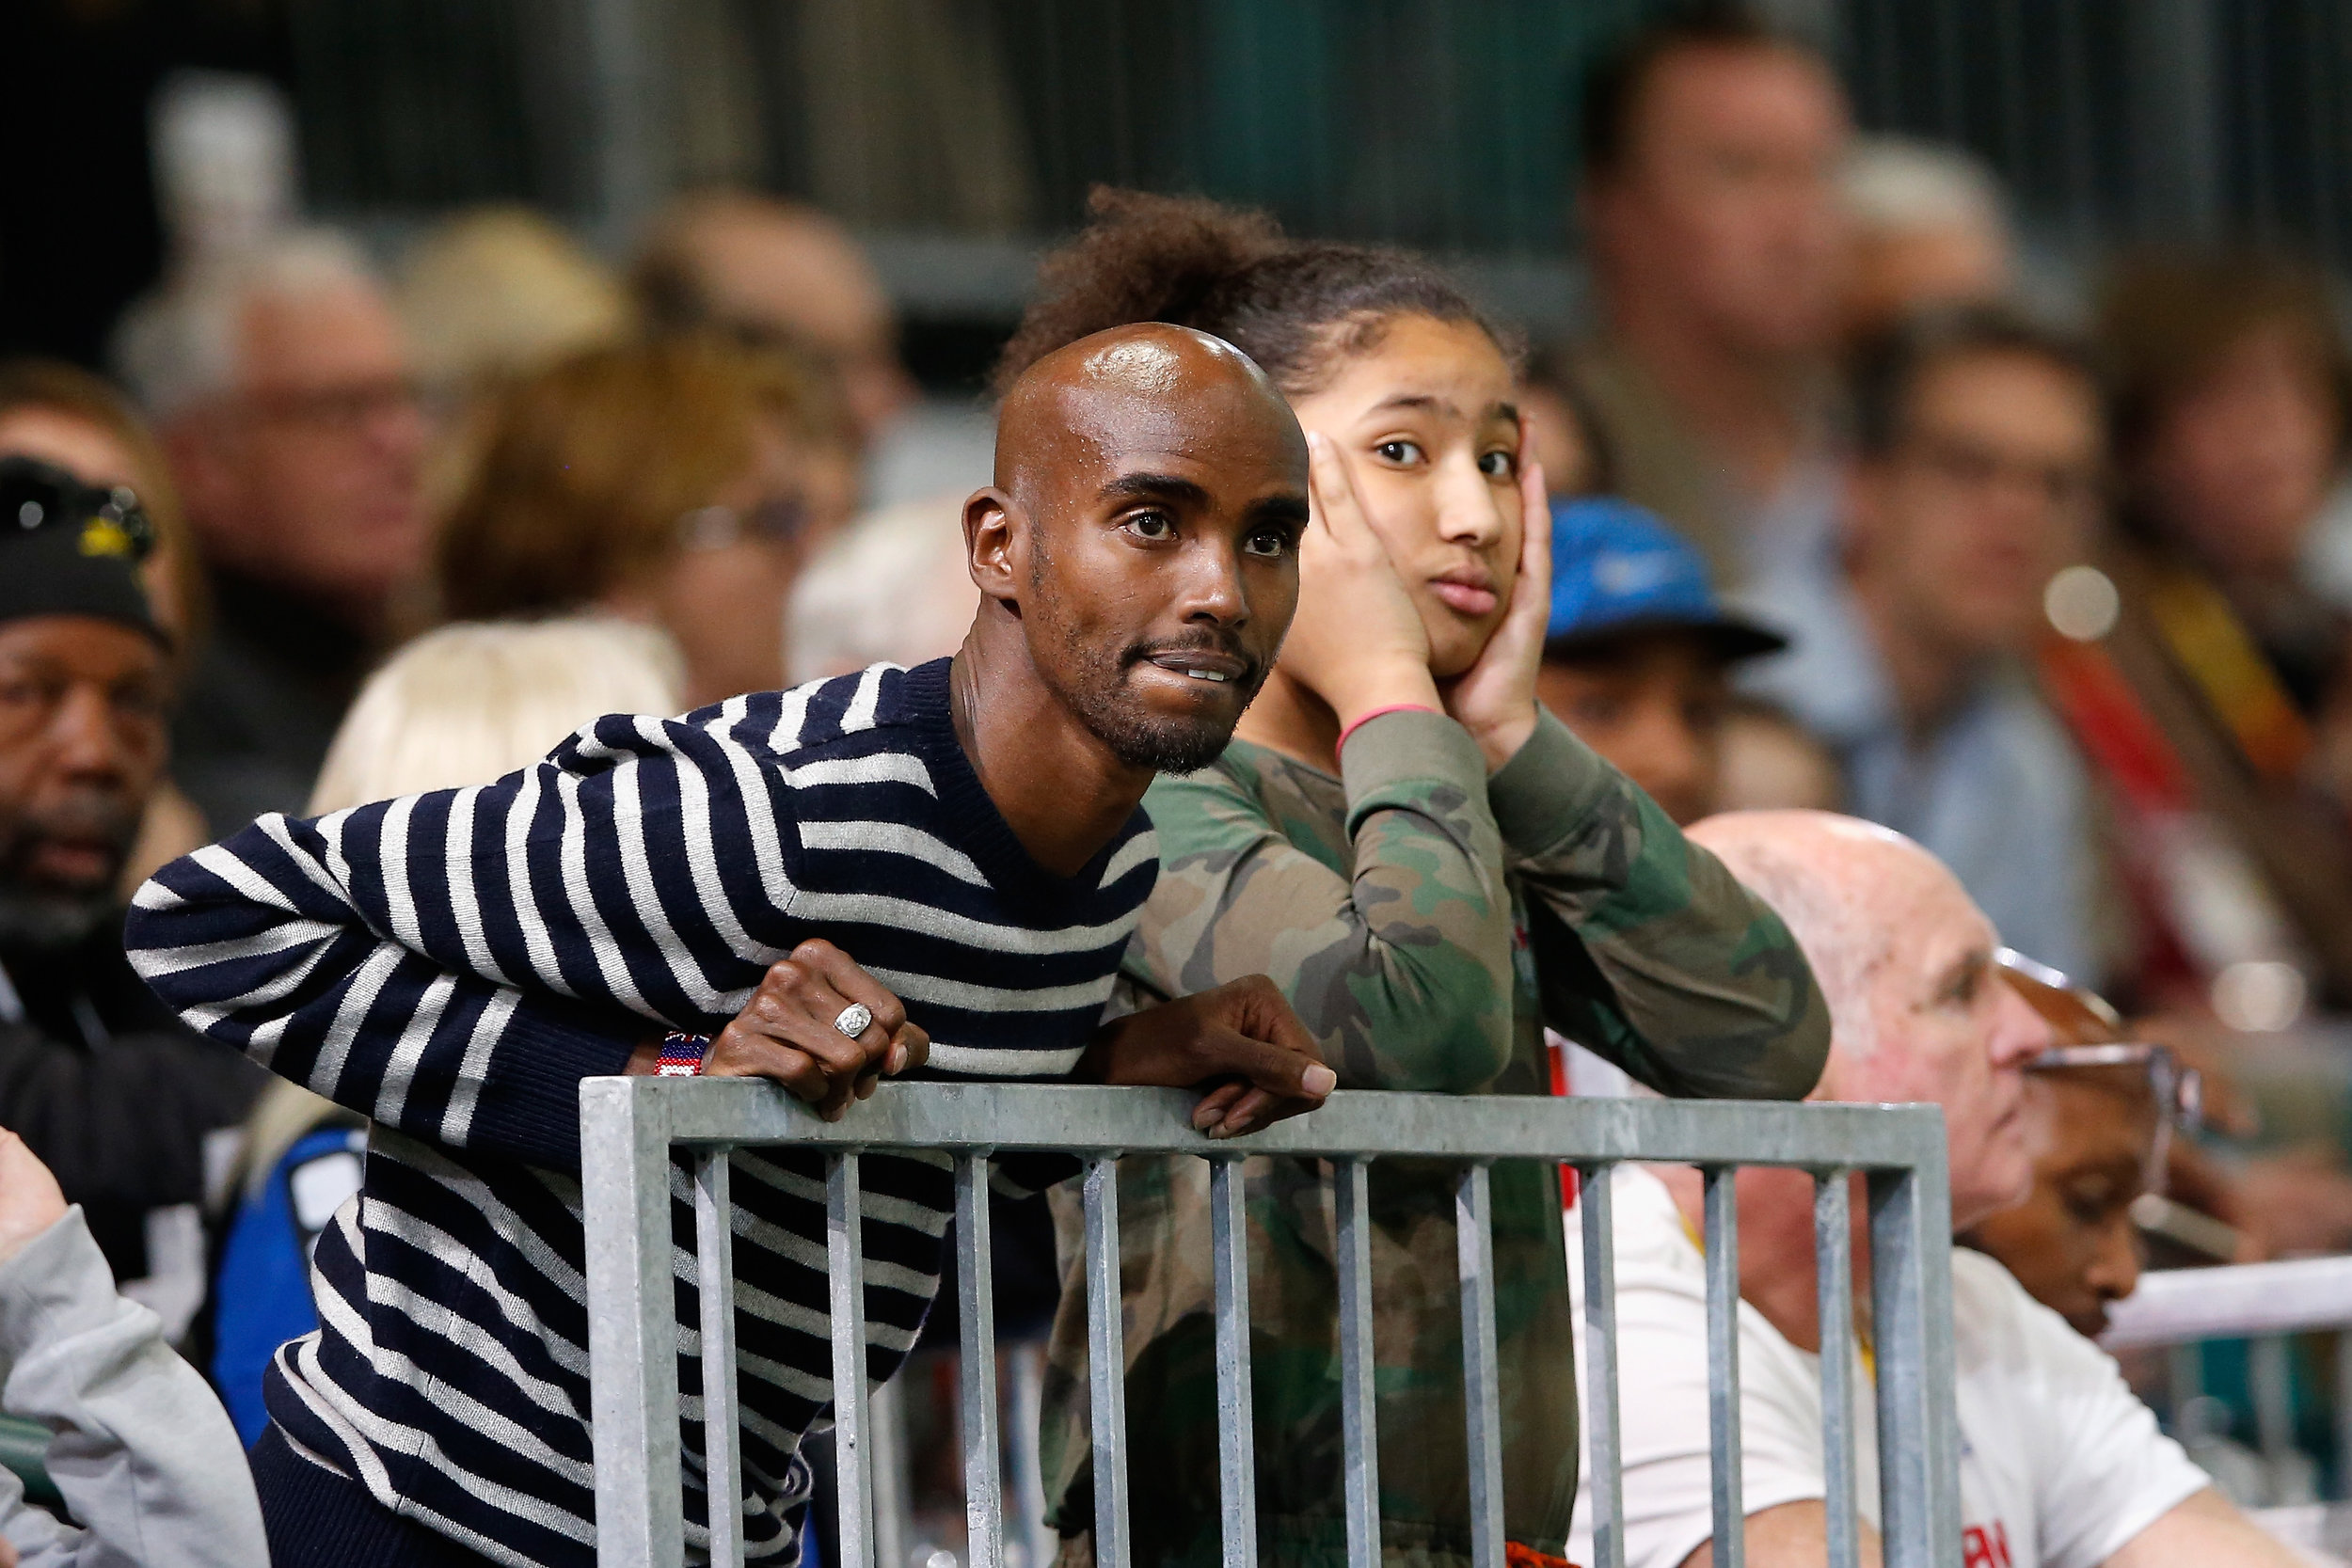 British distance champion Mo Farah, who often trains in the Portland area, watching Friday night's men's 1500 heats with daughter Rihanna // Getty Images for IAAF